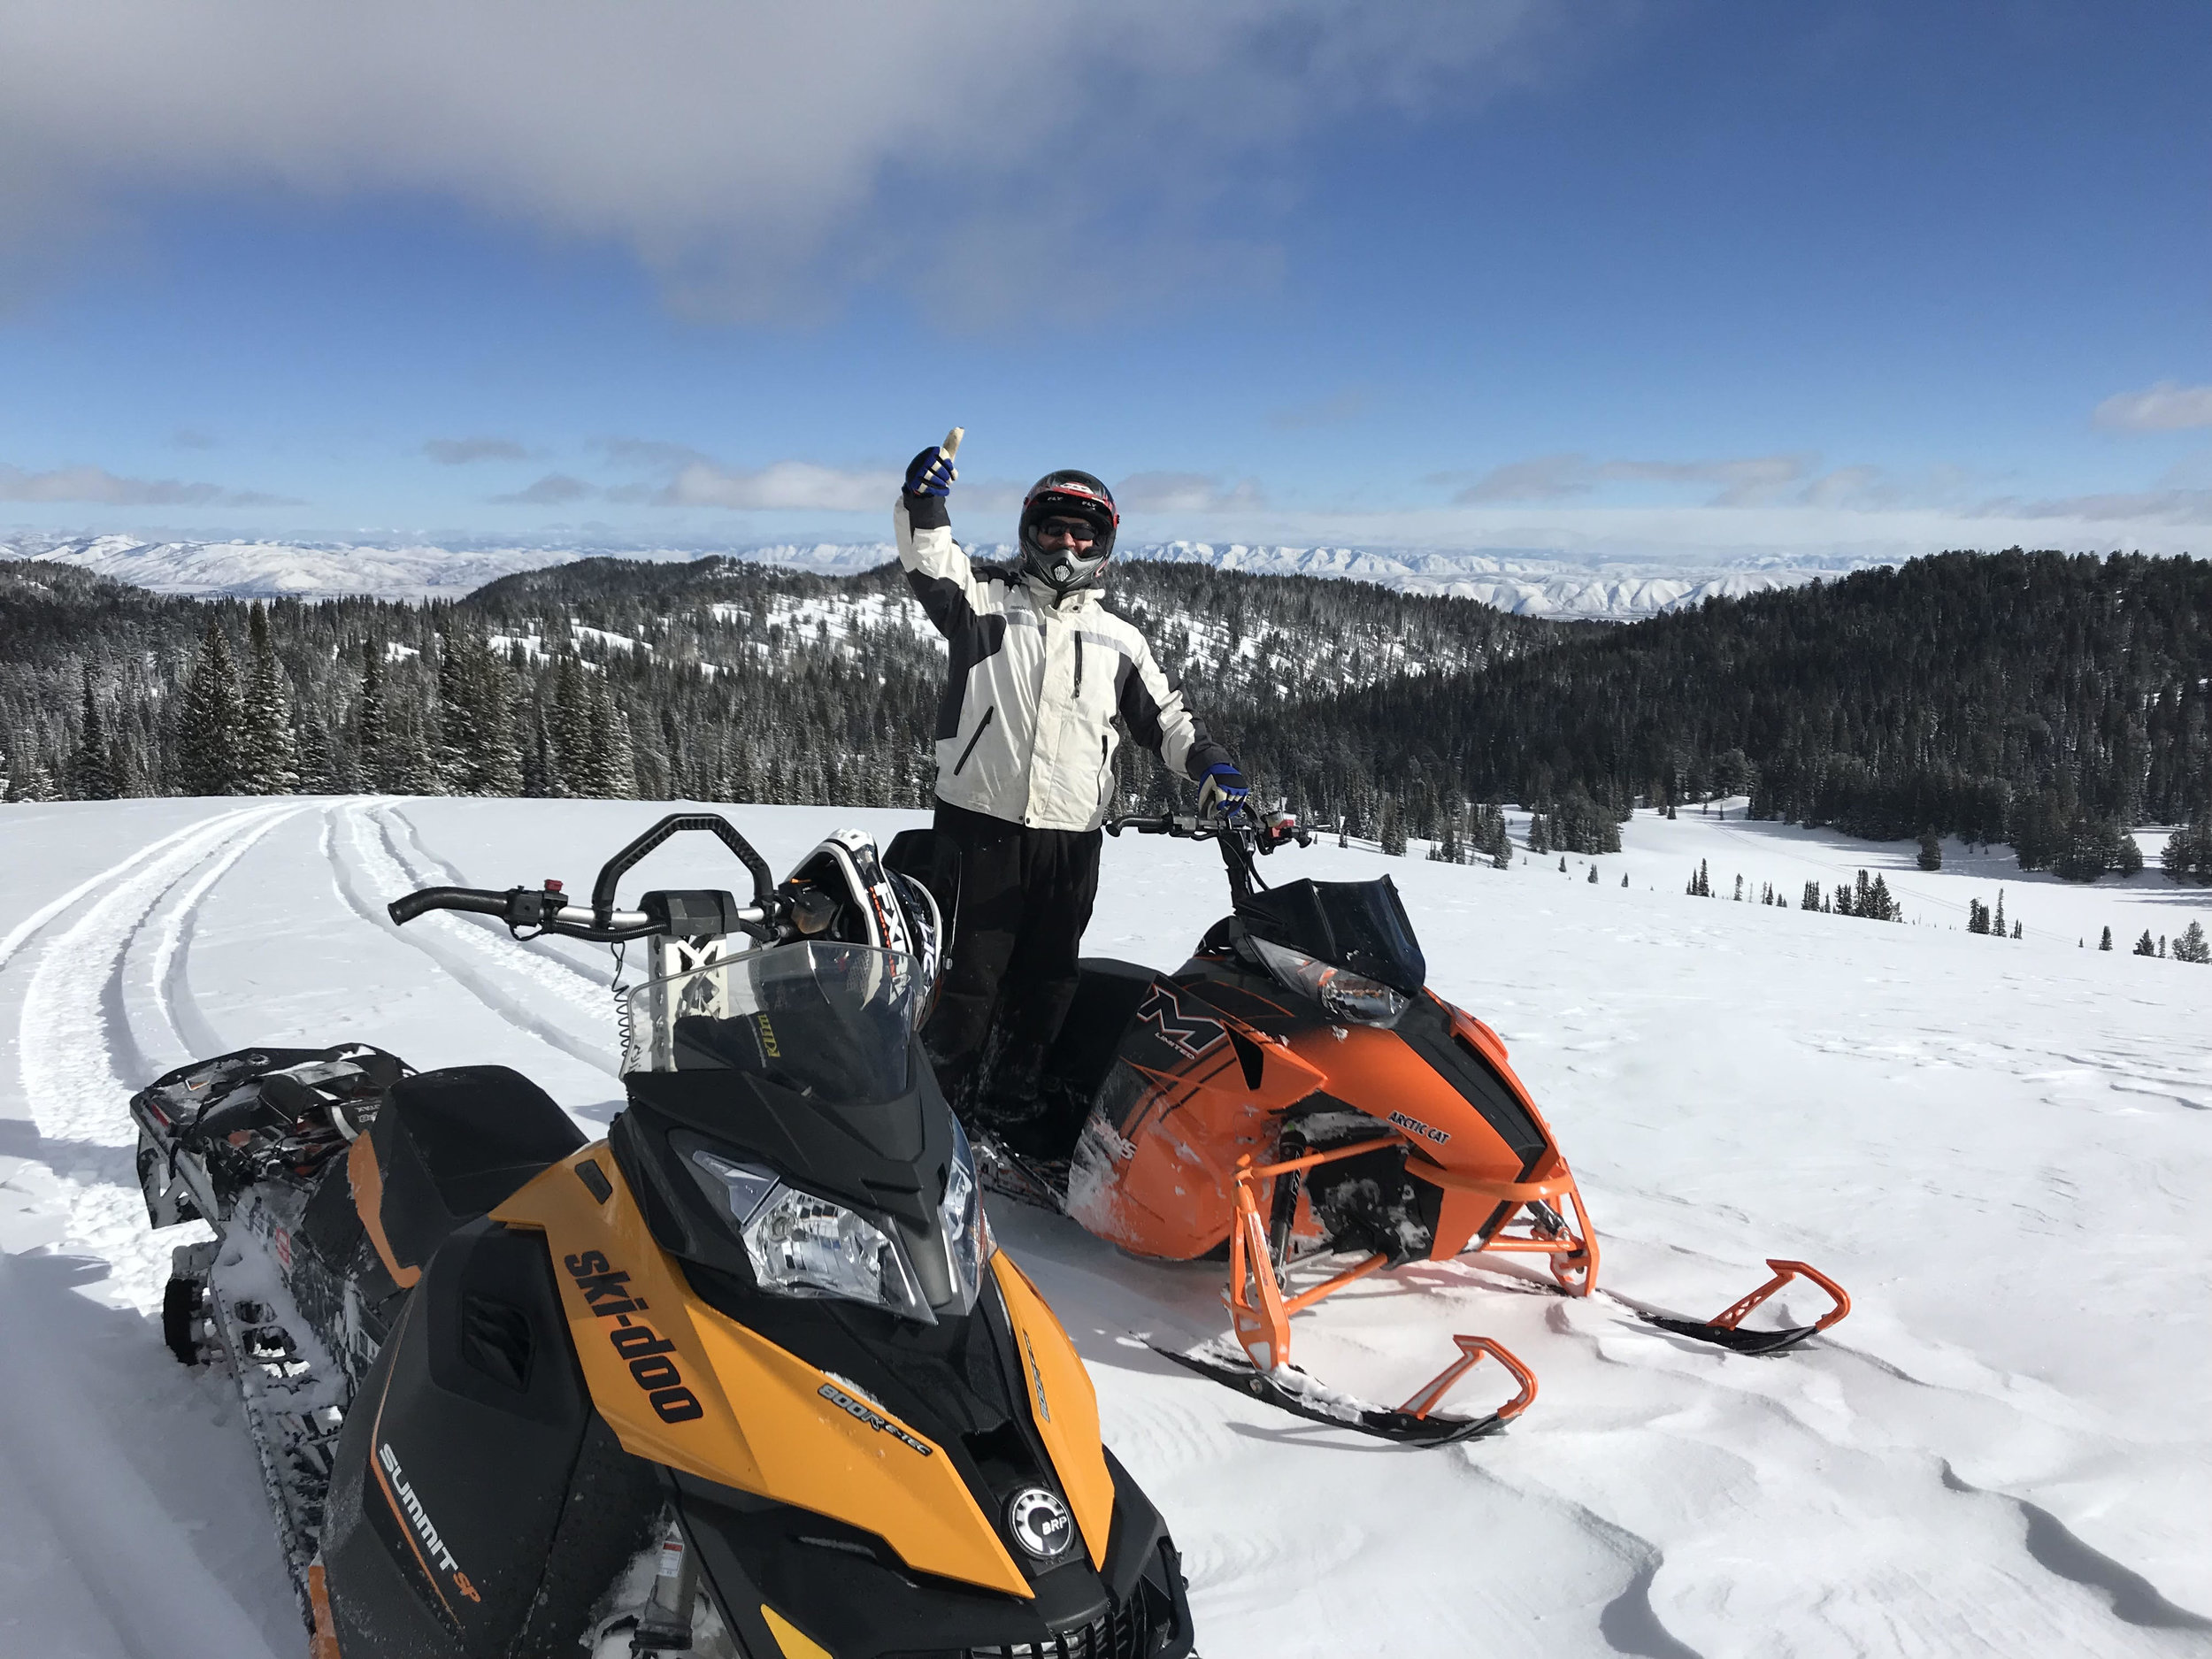 2-sleds-thumbs-up.jpg